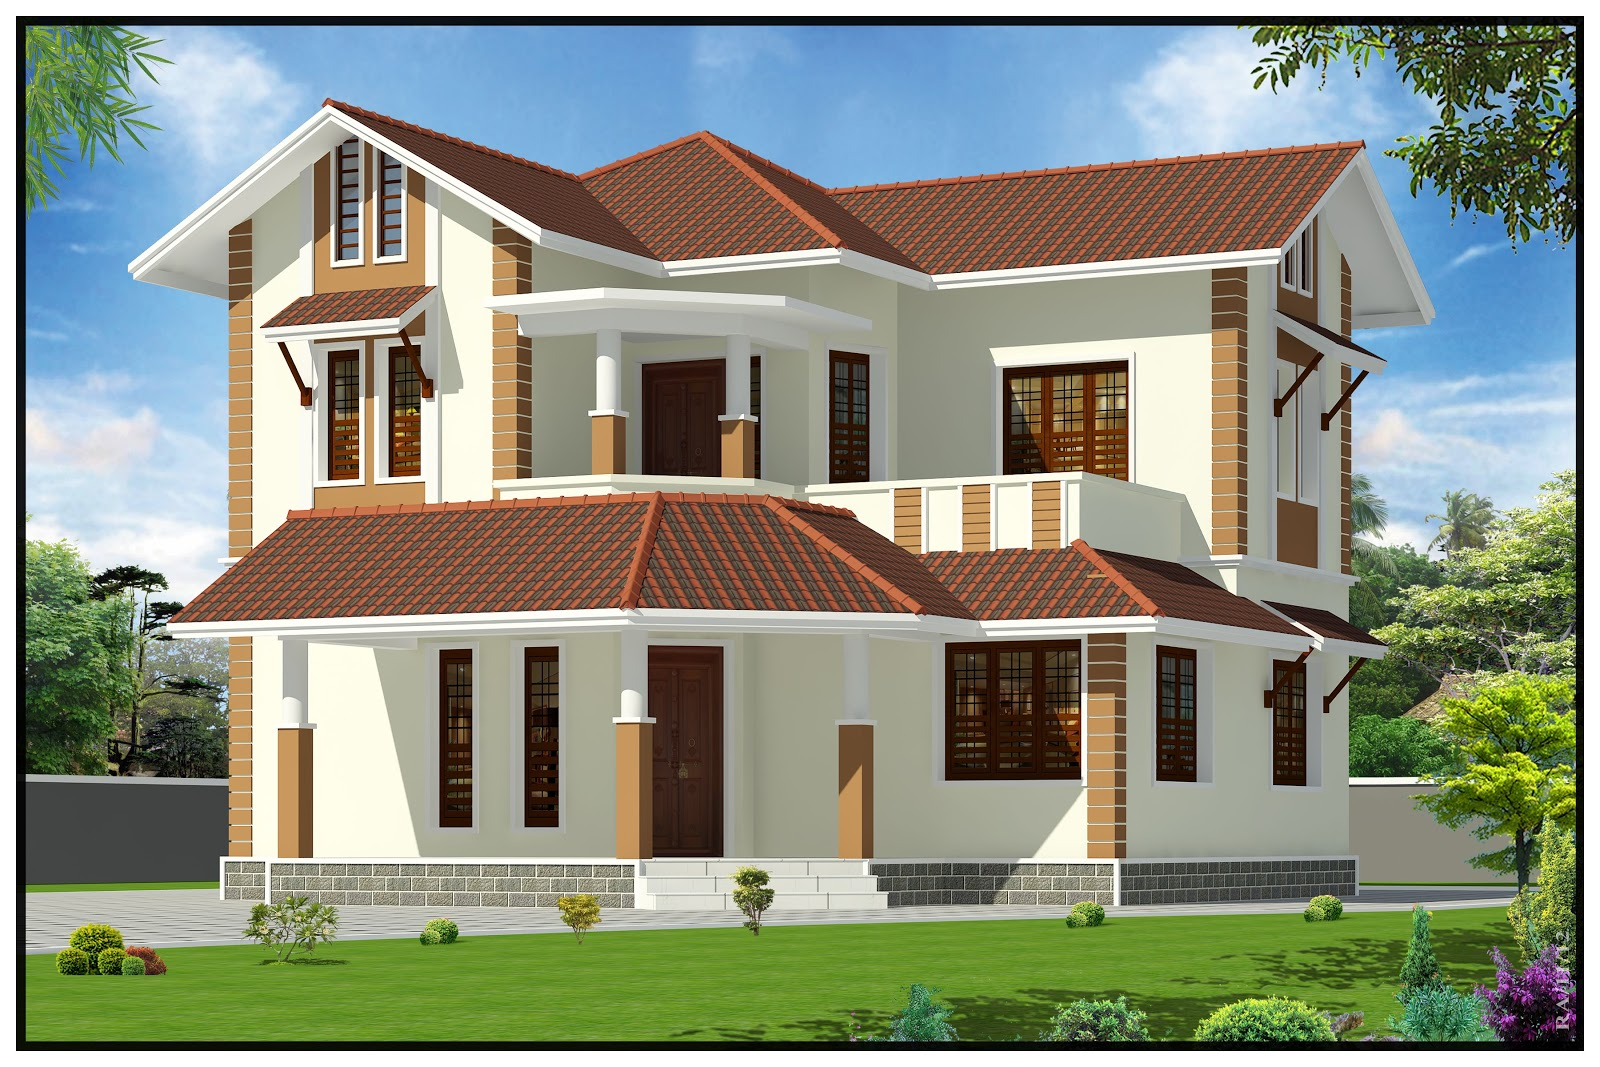 Design Engineer From Home Indian Home Design 1640sqft 4bedrooms Engineering  Dairy